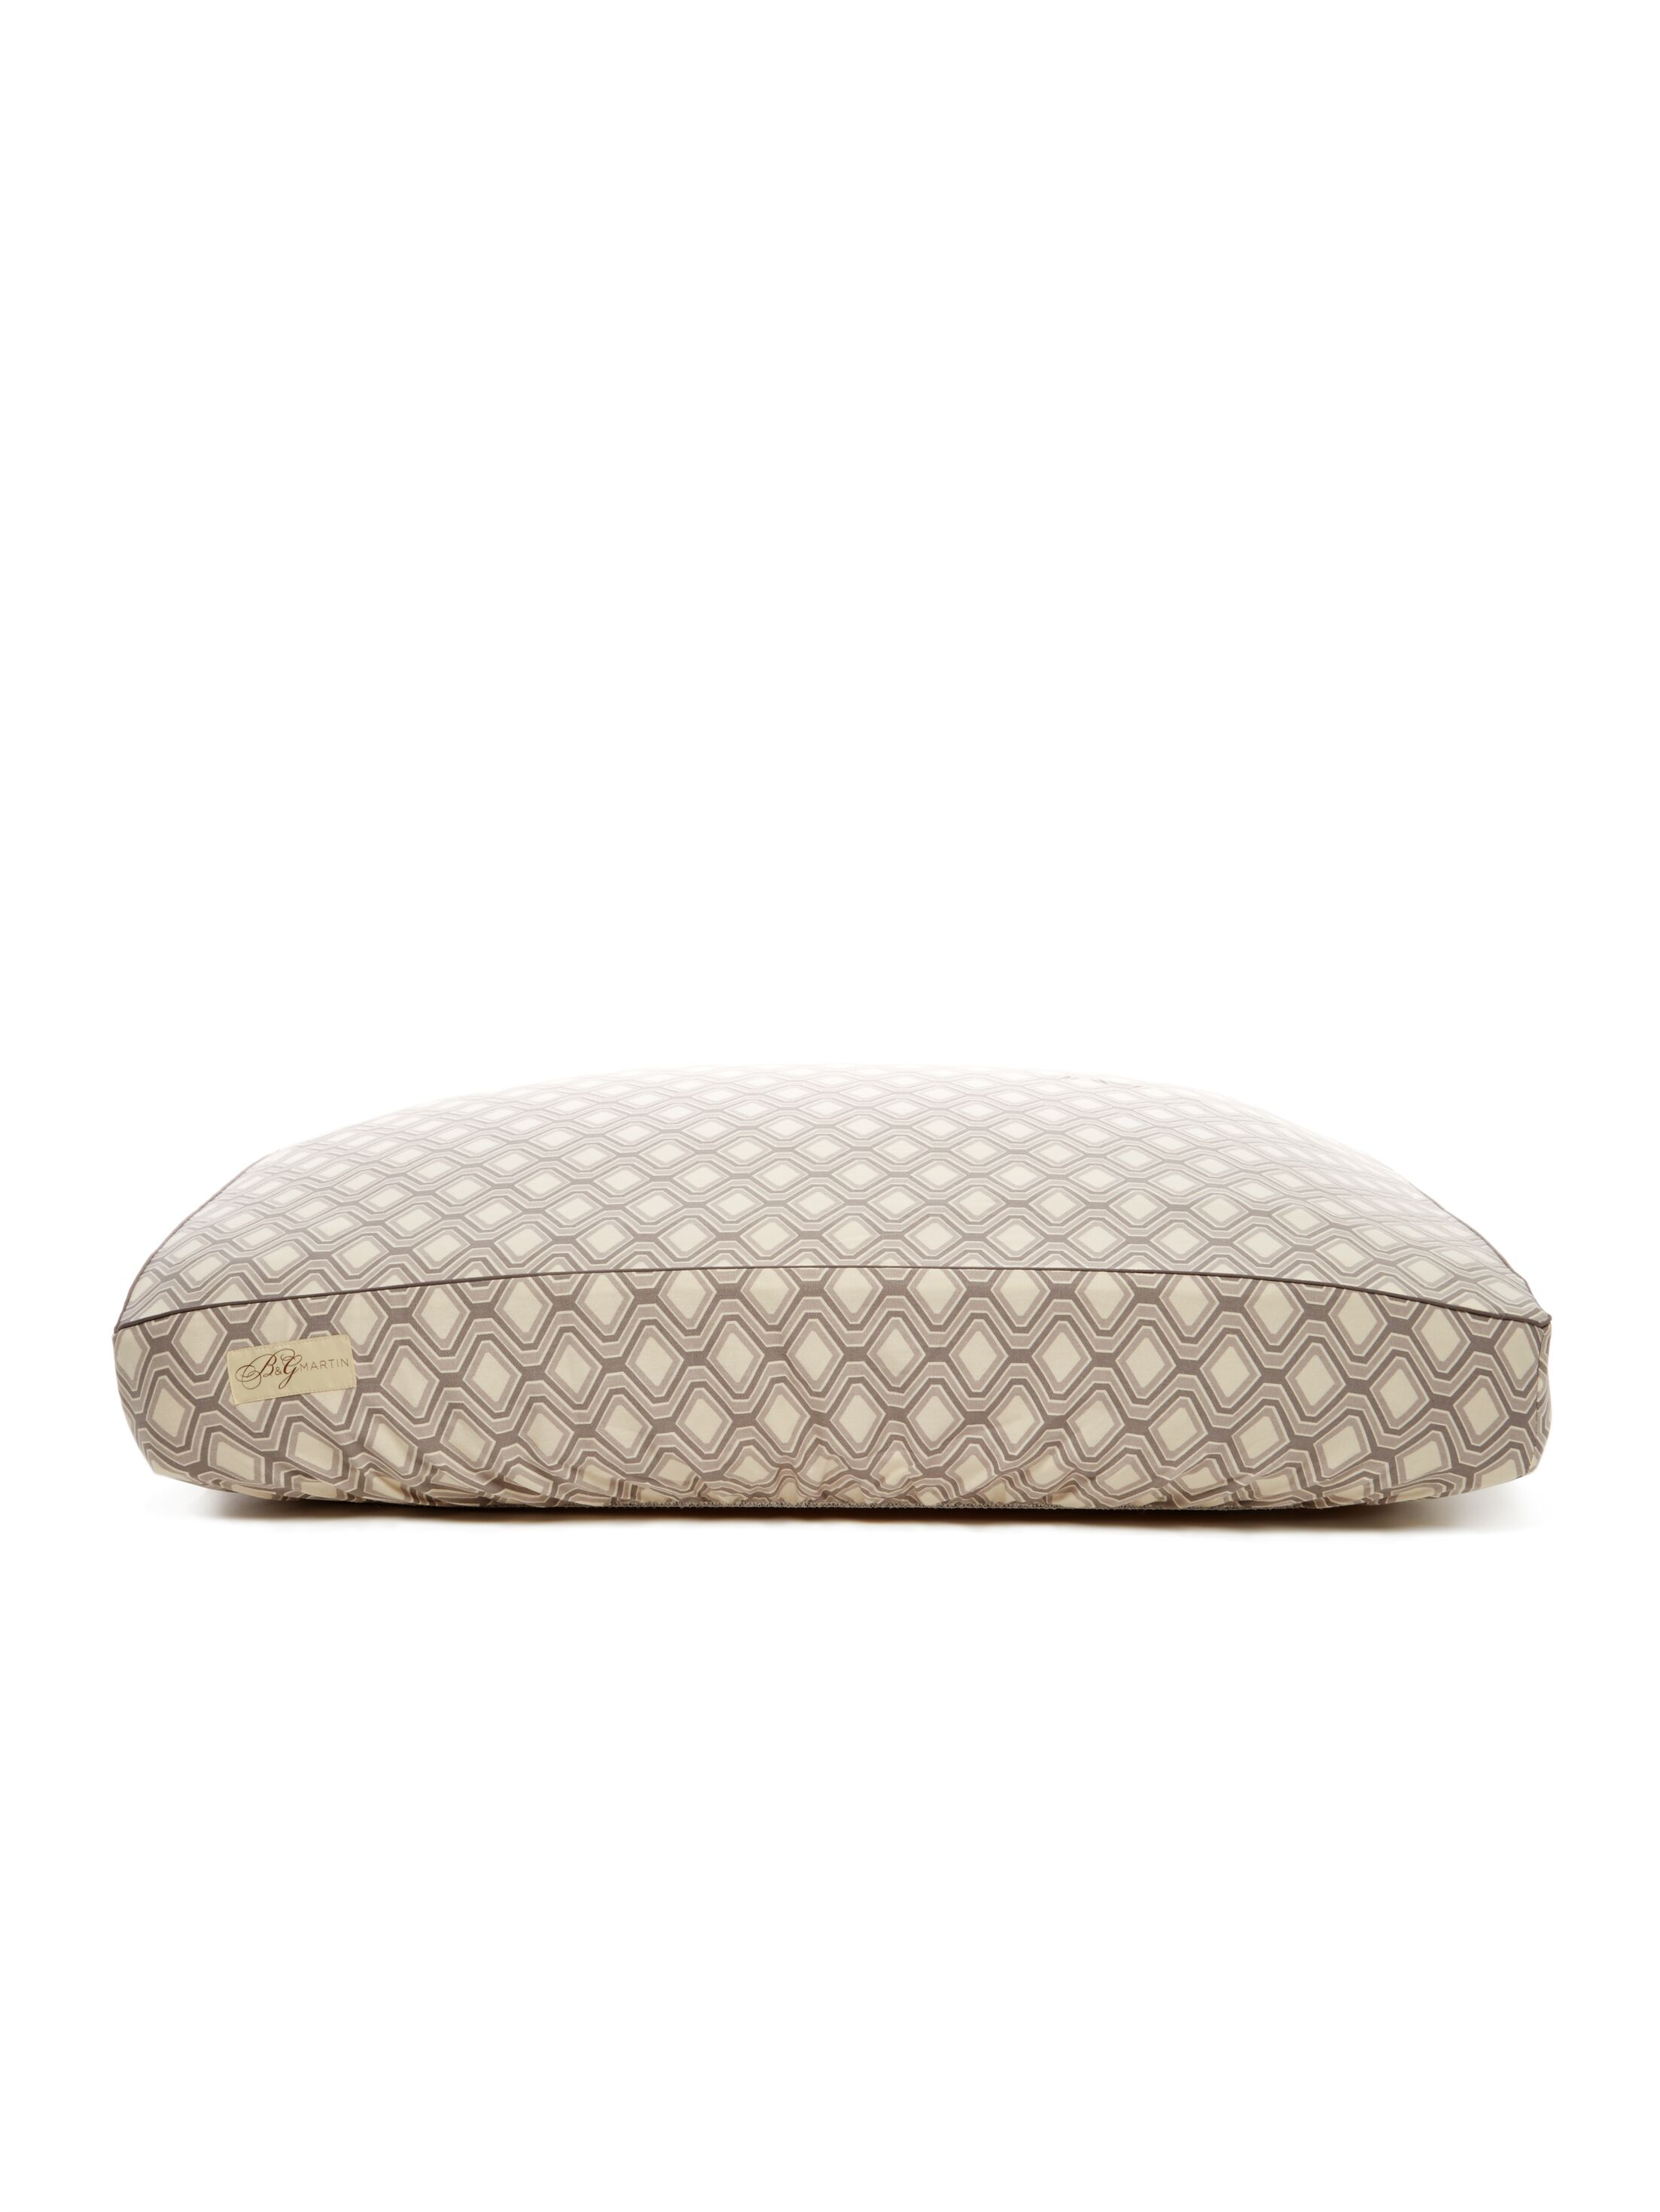 Deluxe Geometric Dog Bed Cover Size: Large (26